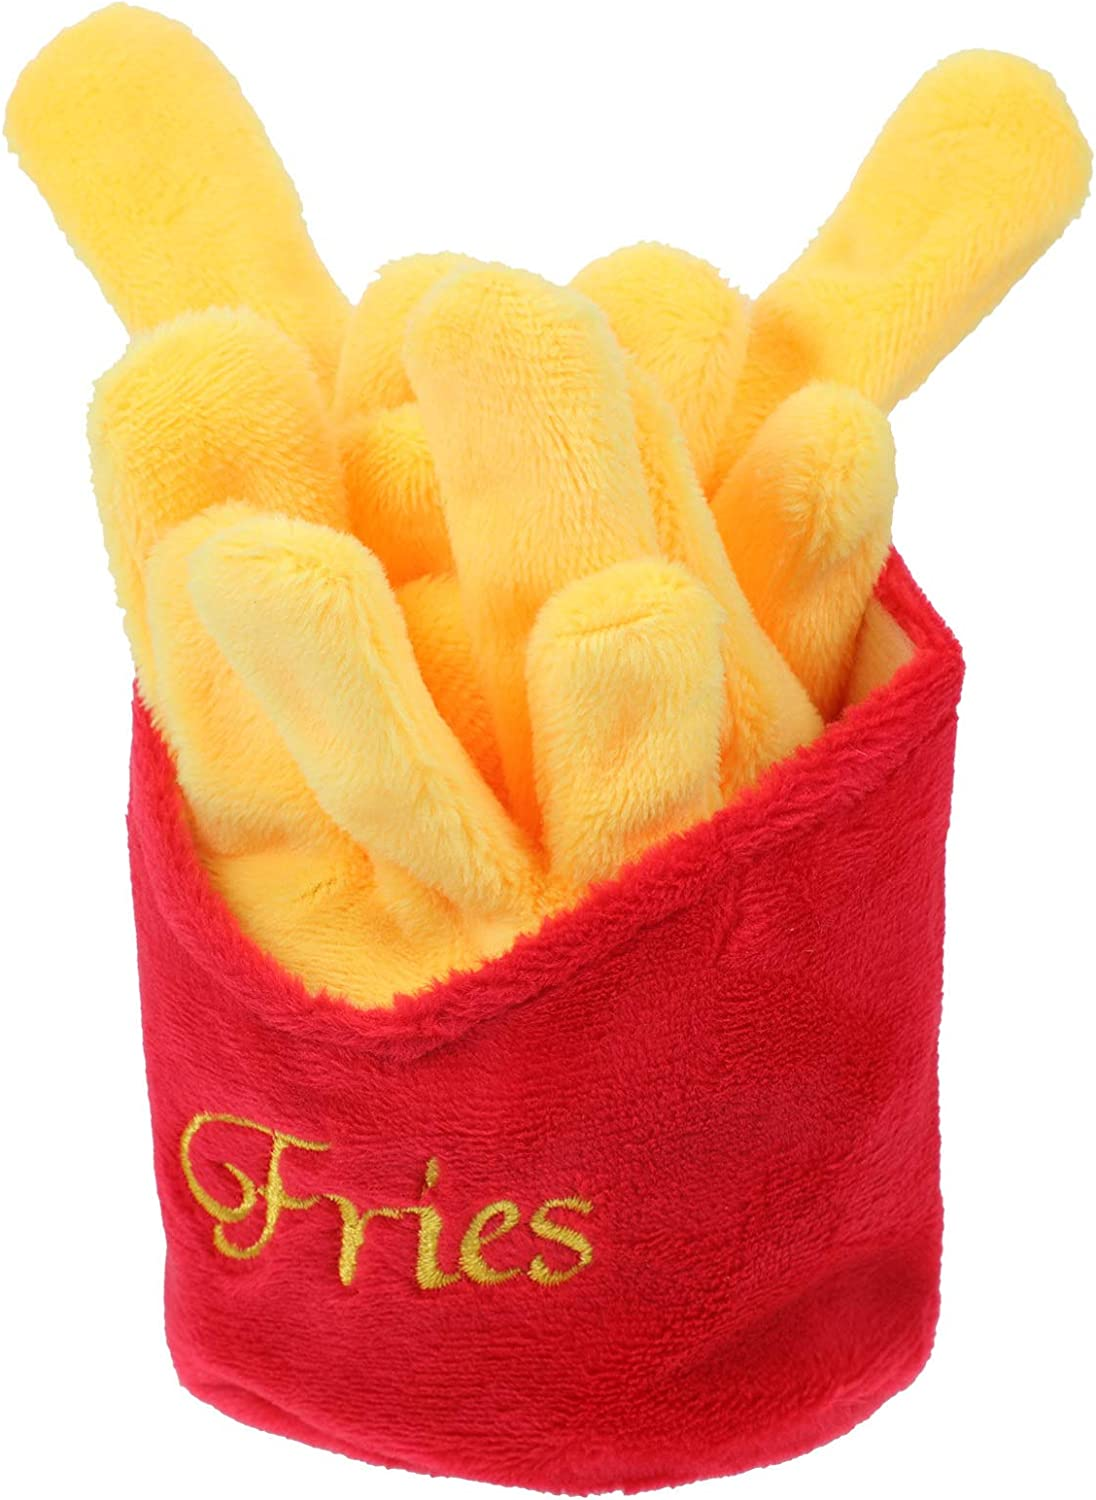 POPETPOP Dog Chew Toys Plush Stuffed Puppy Chew Toys- Shaped Plush Dog Toy Pack Hot Dog French Fries Plush Dog Toy for Small Medium Dogs